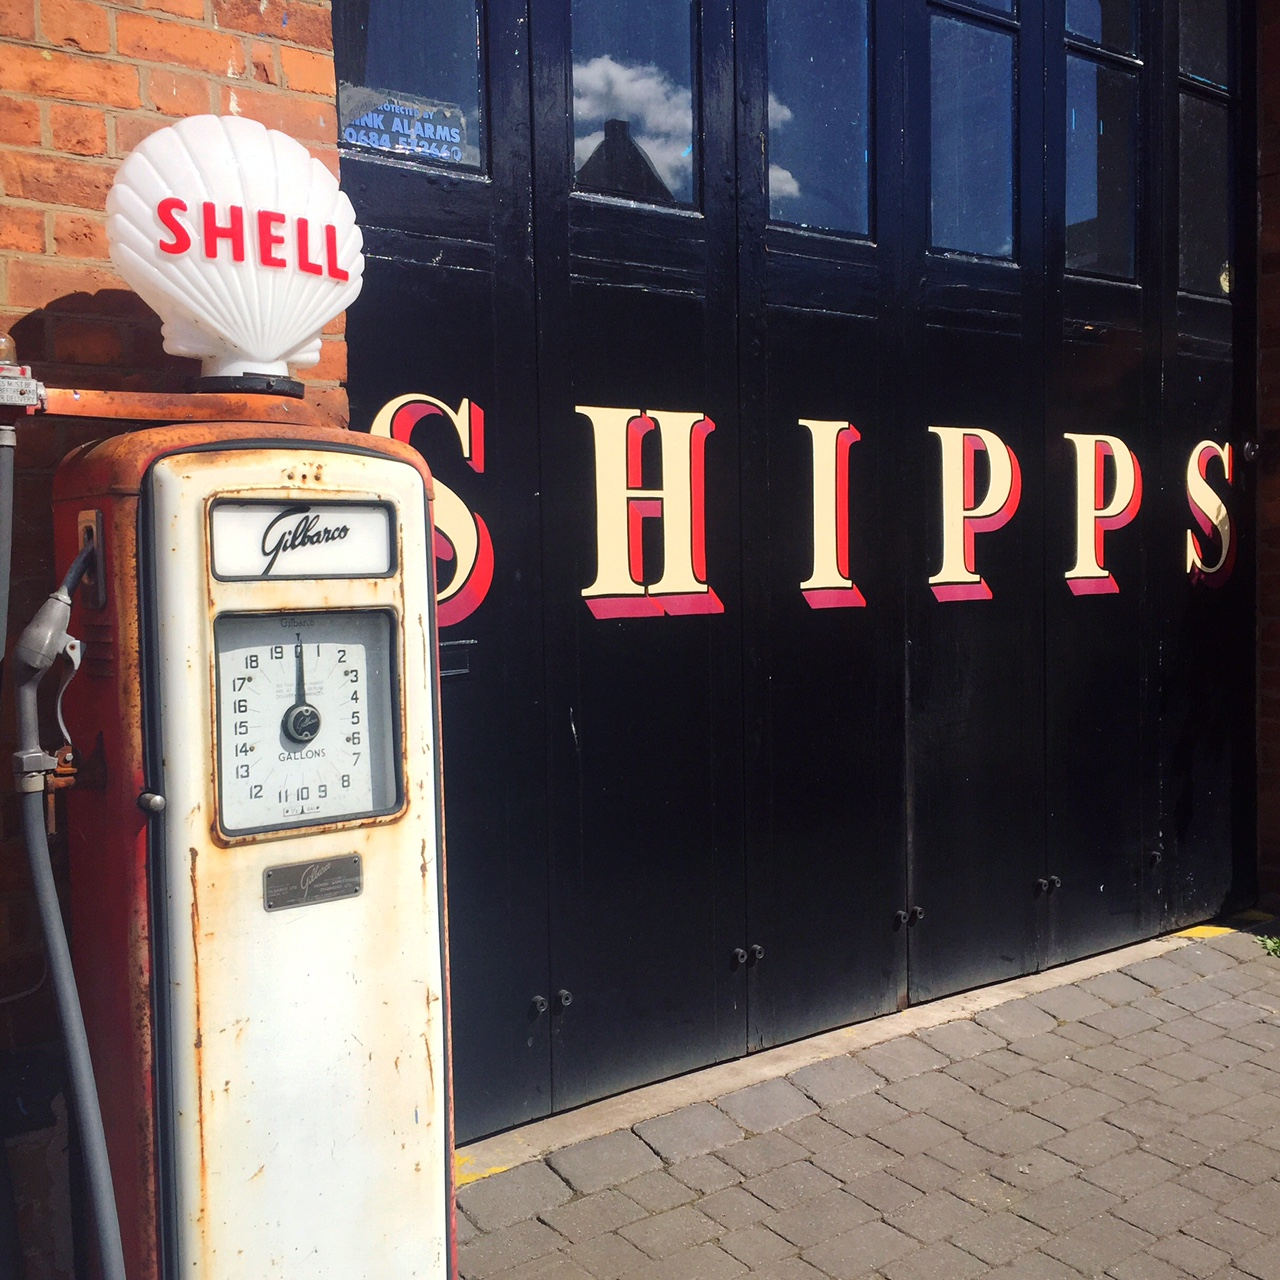 Upton-upon-severn-shipps-shell-garage-retro-vintage-blog.JPG